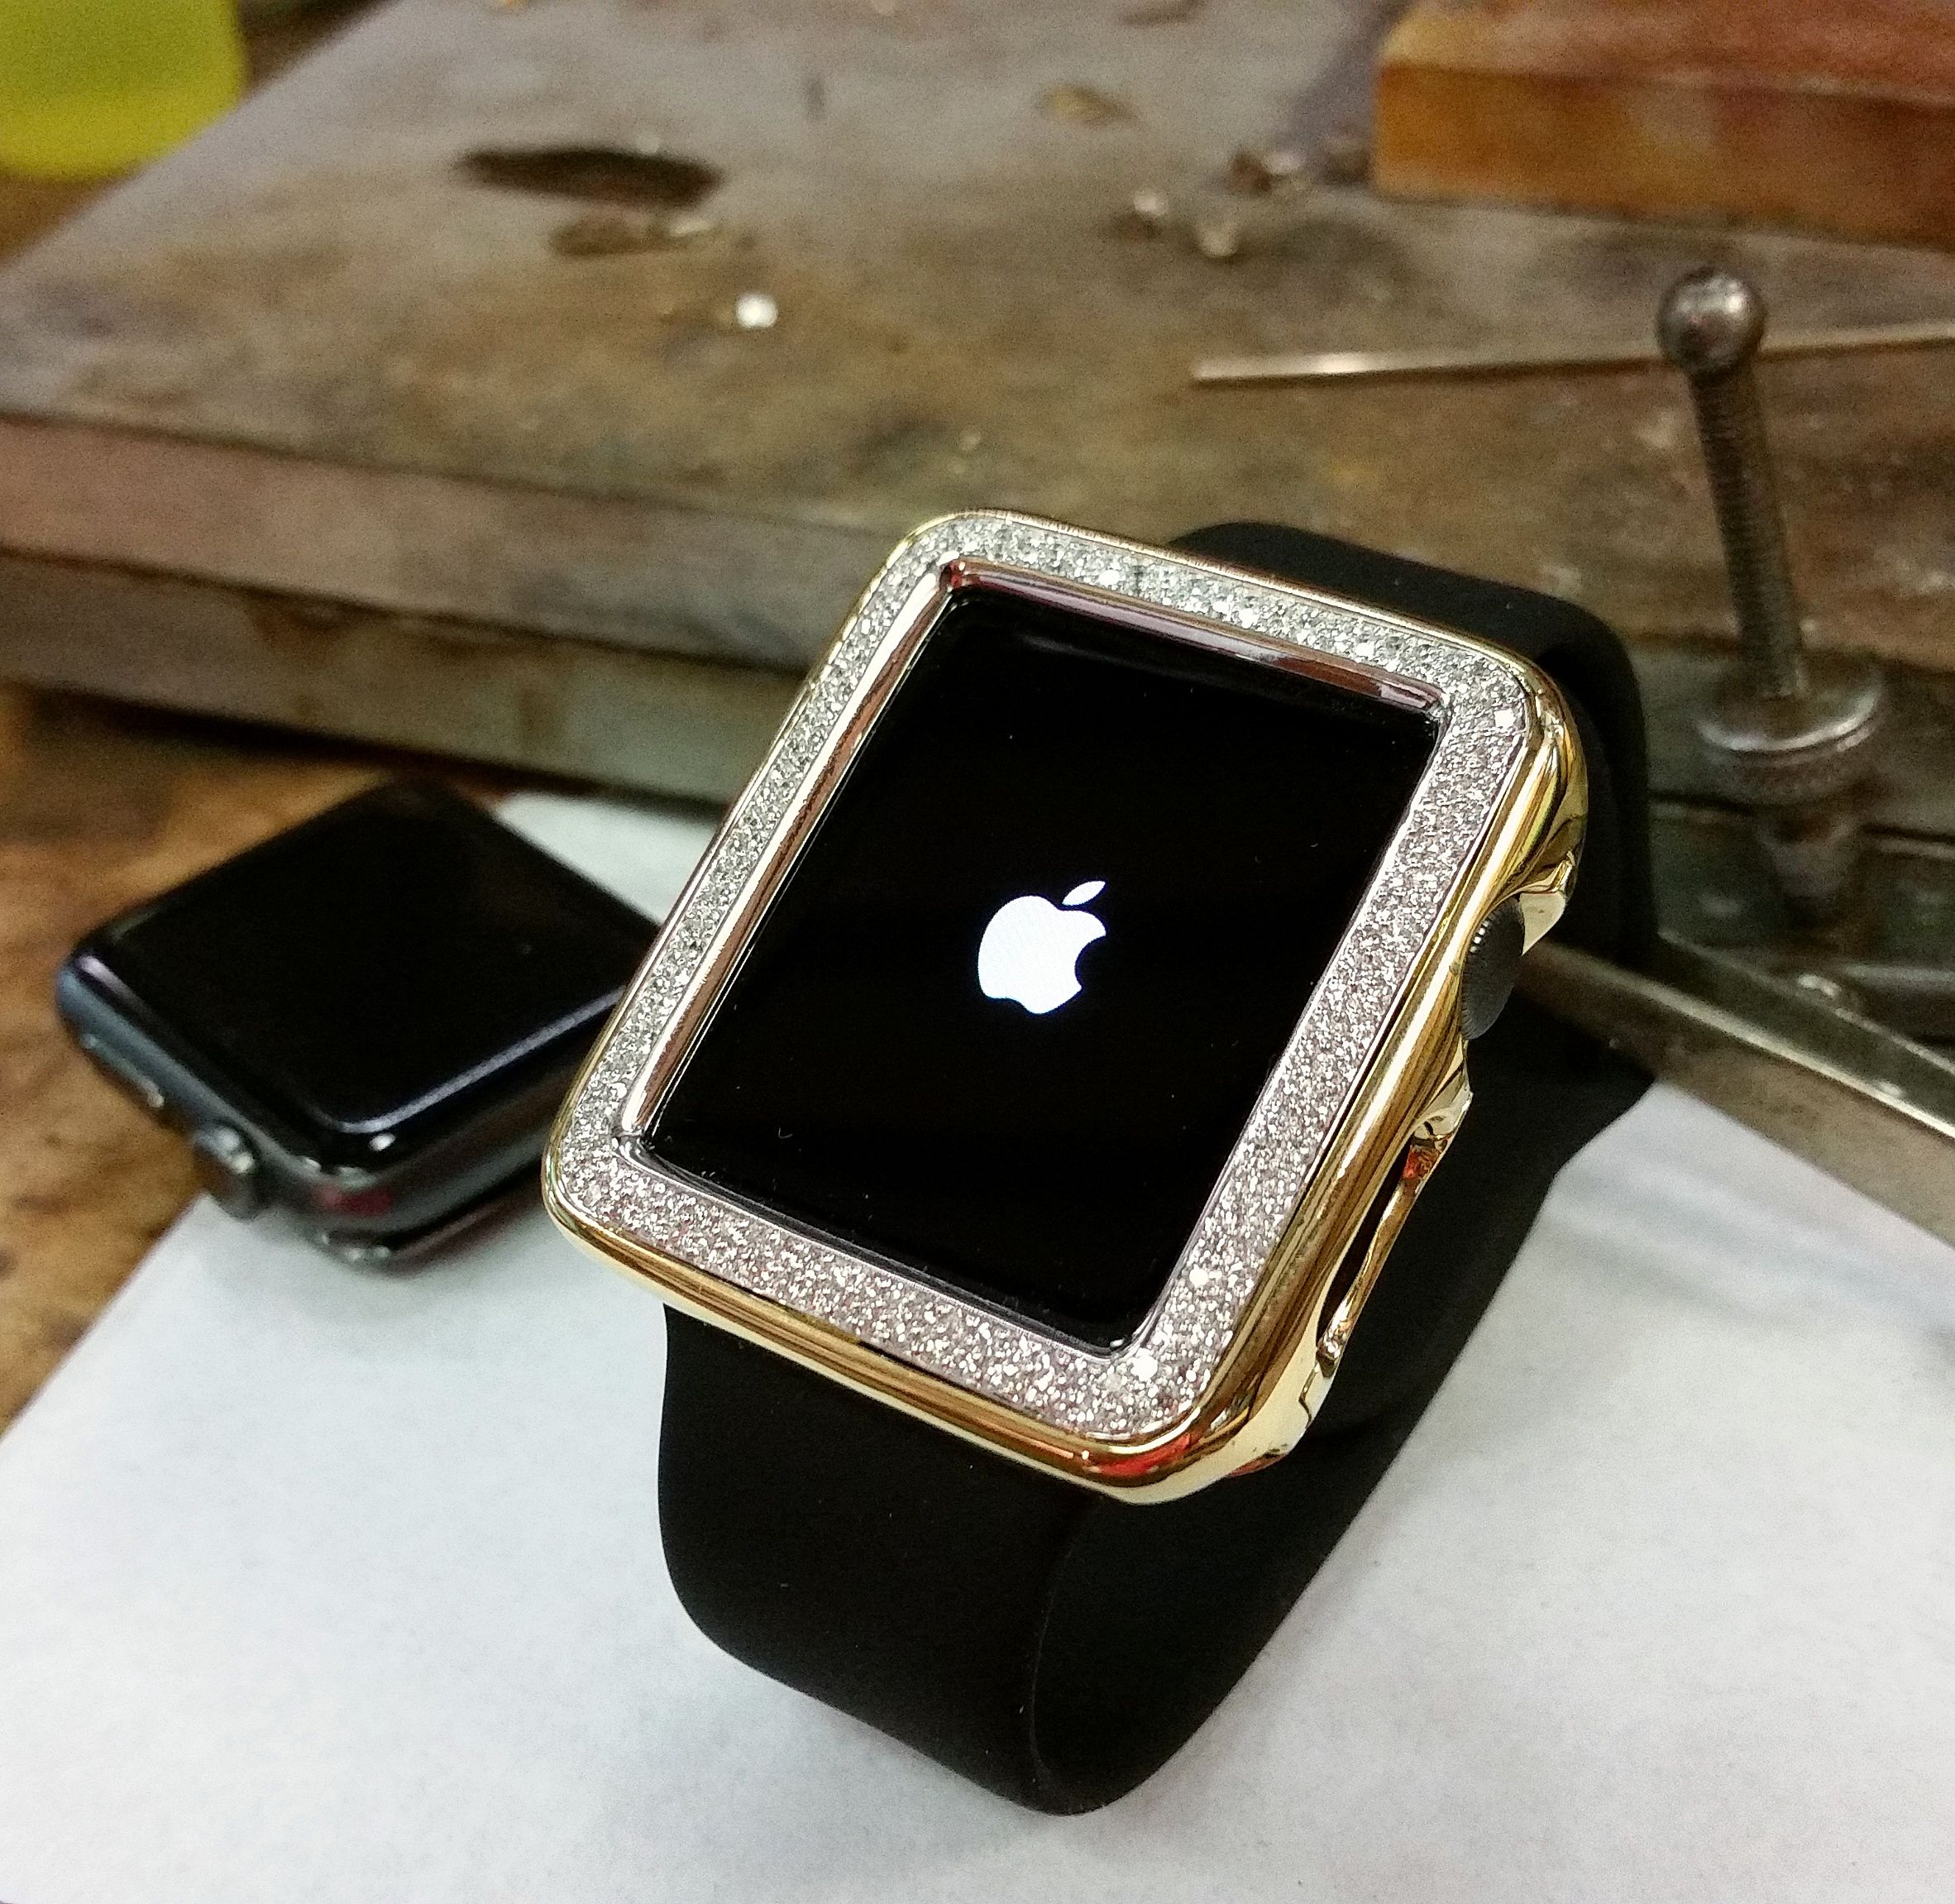 sale retailer 7bc1a ecfa3 Handcrafted Apple Watch case in 18kt gold with diamond bezel ...